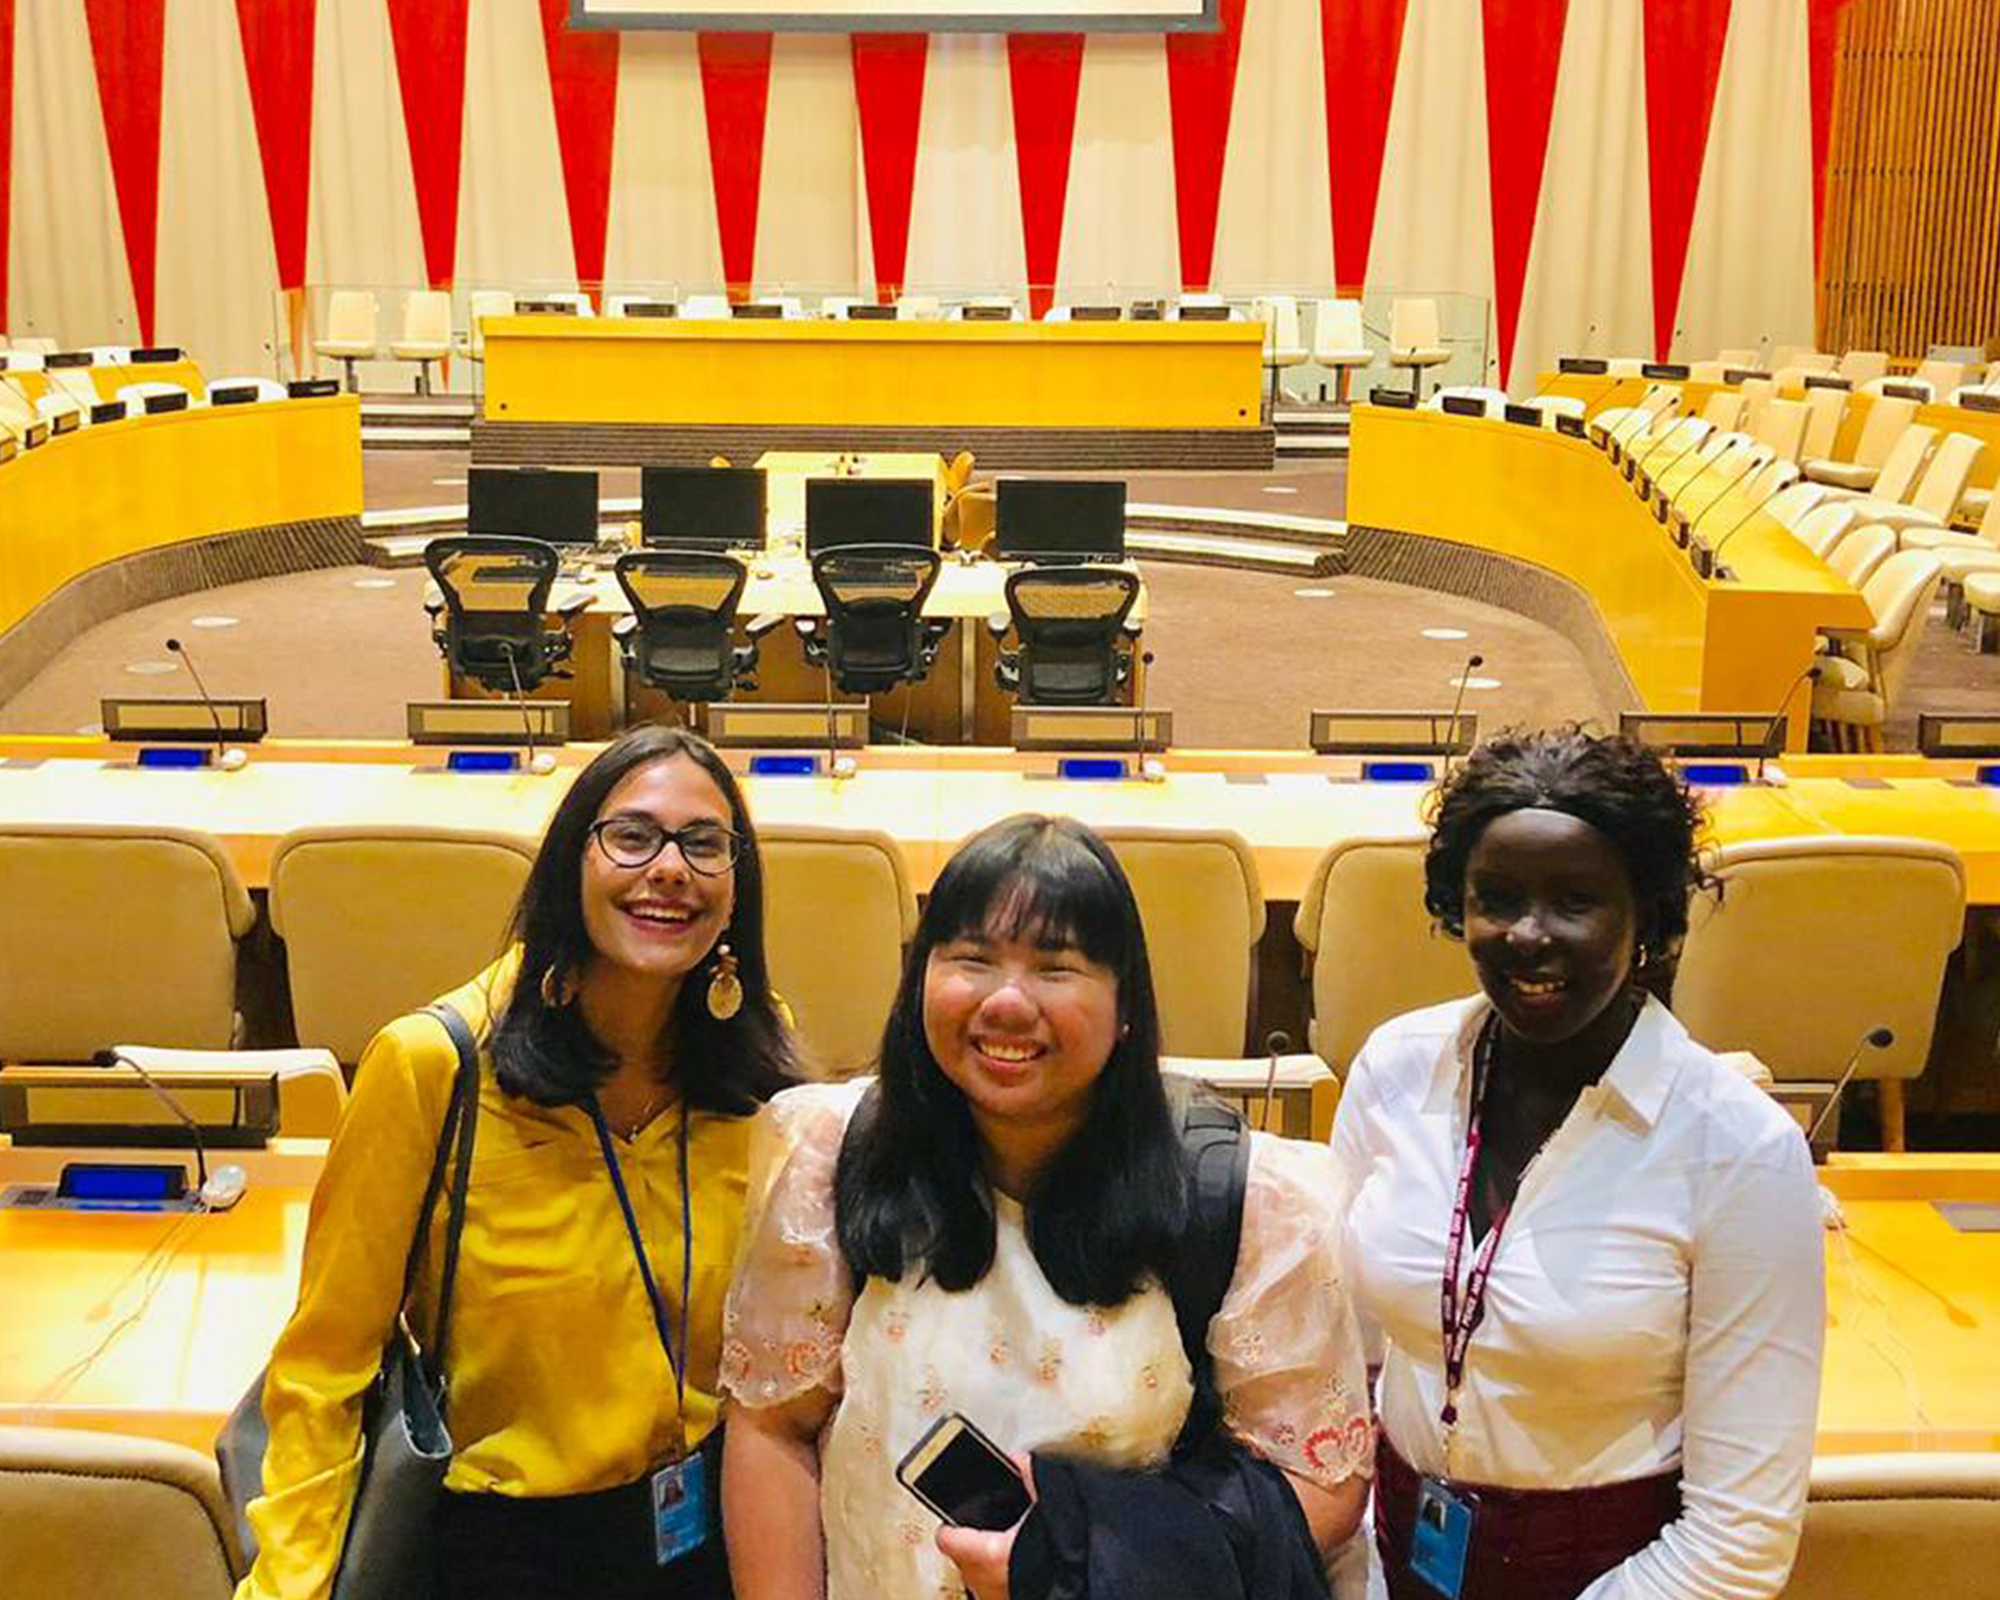 Alumna Sophia Dianne C. Garcia urges stronger UN action to protect women